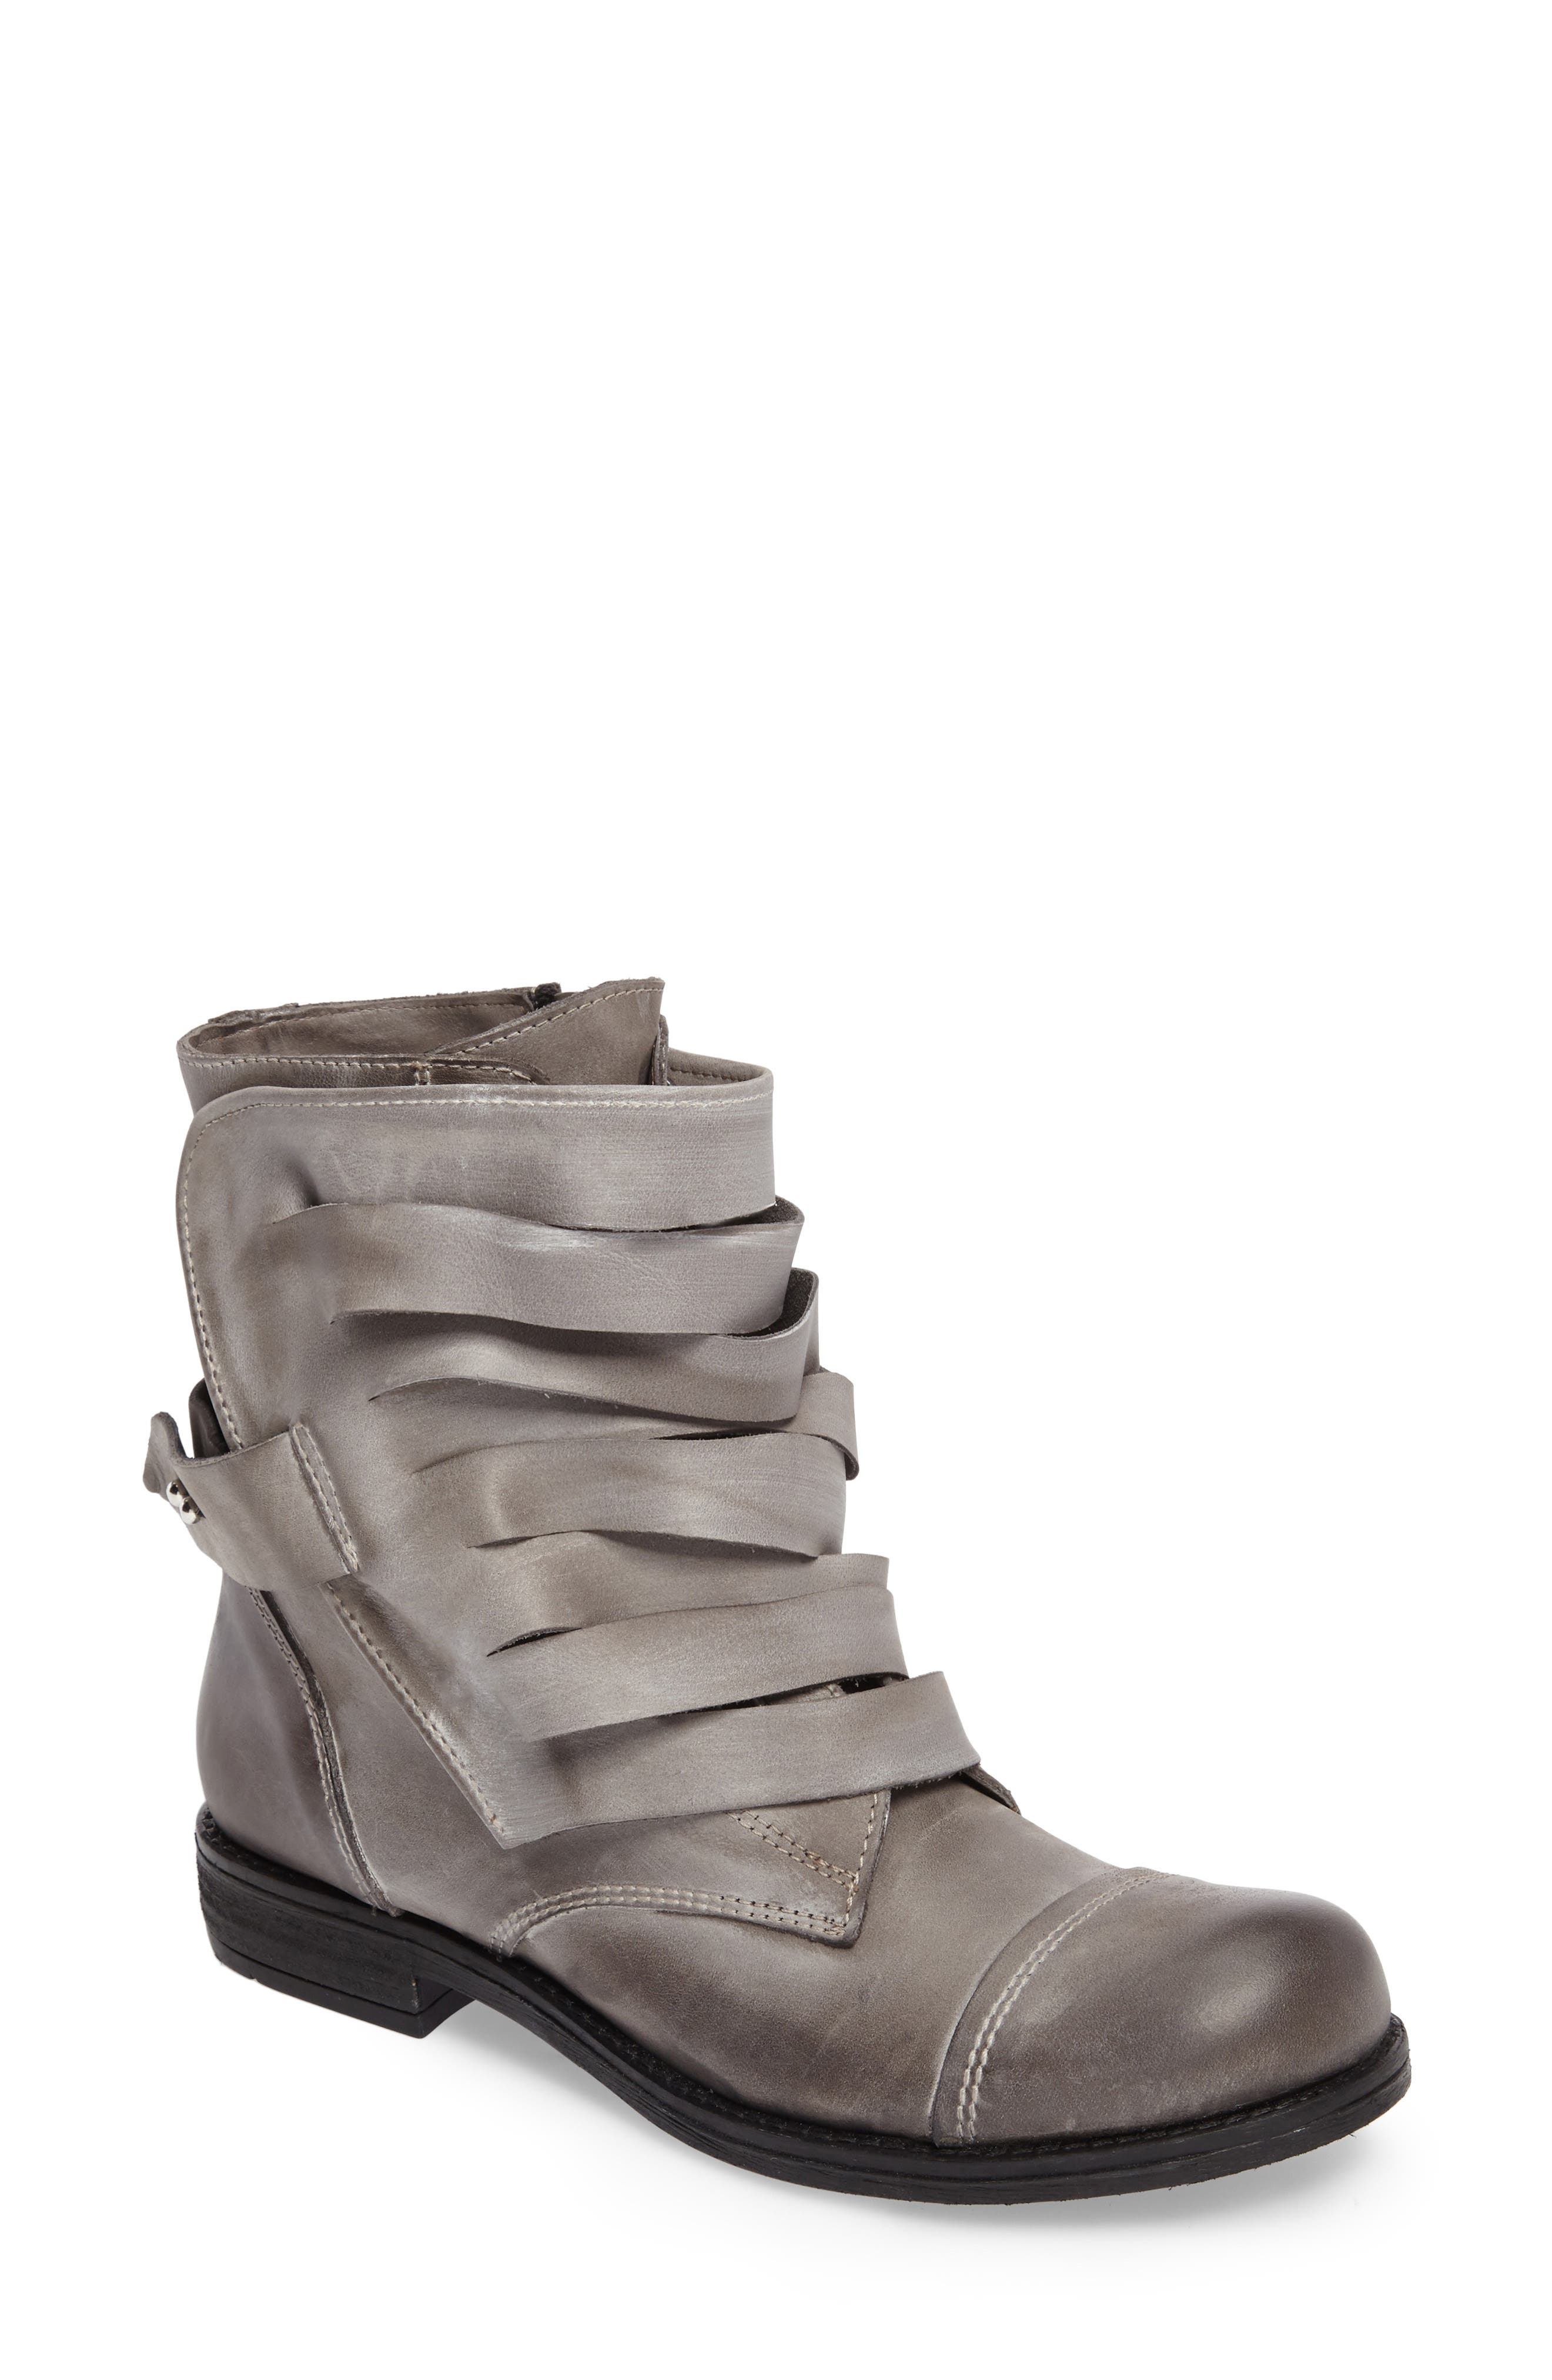 Dwight Strappy Boot,                             Main thumbnail 1, color,                             038